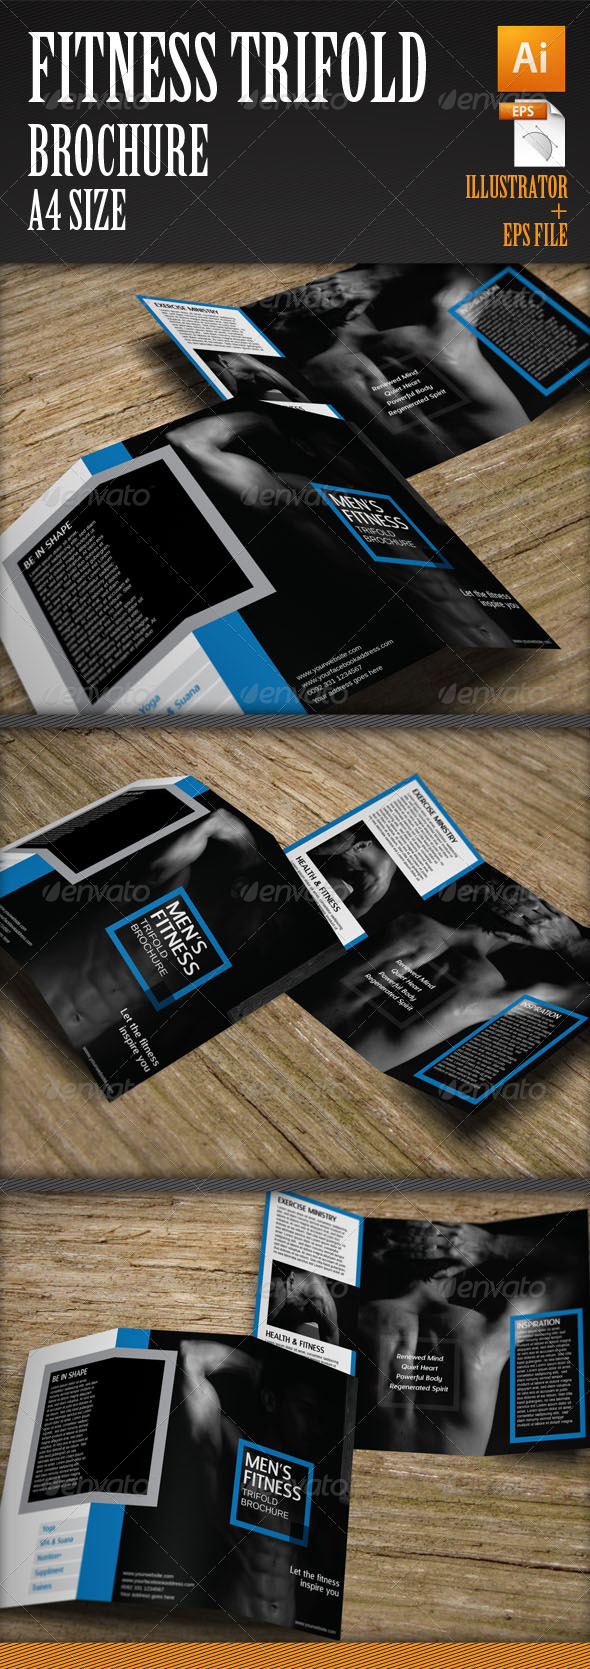 Men's Fitness Trifold Brochure Template - Corporate Brochures